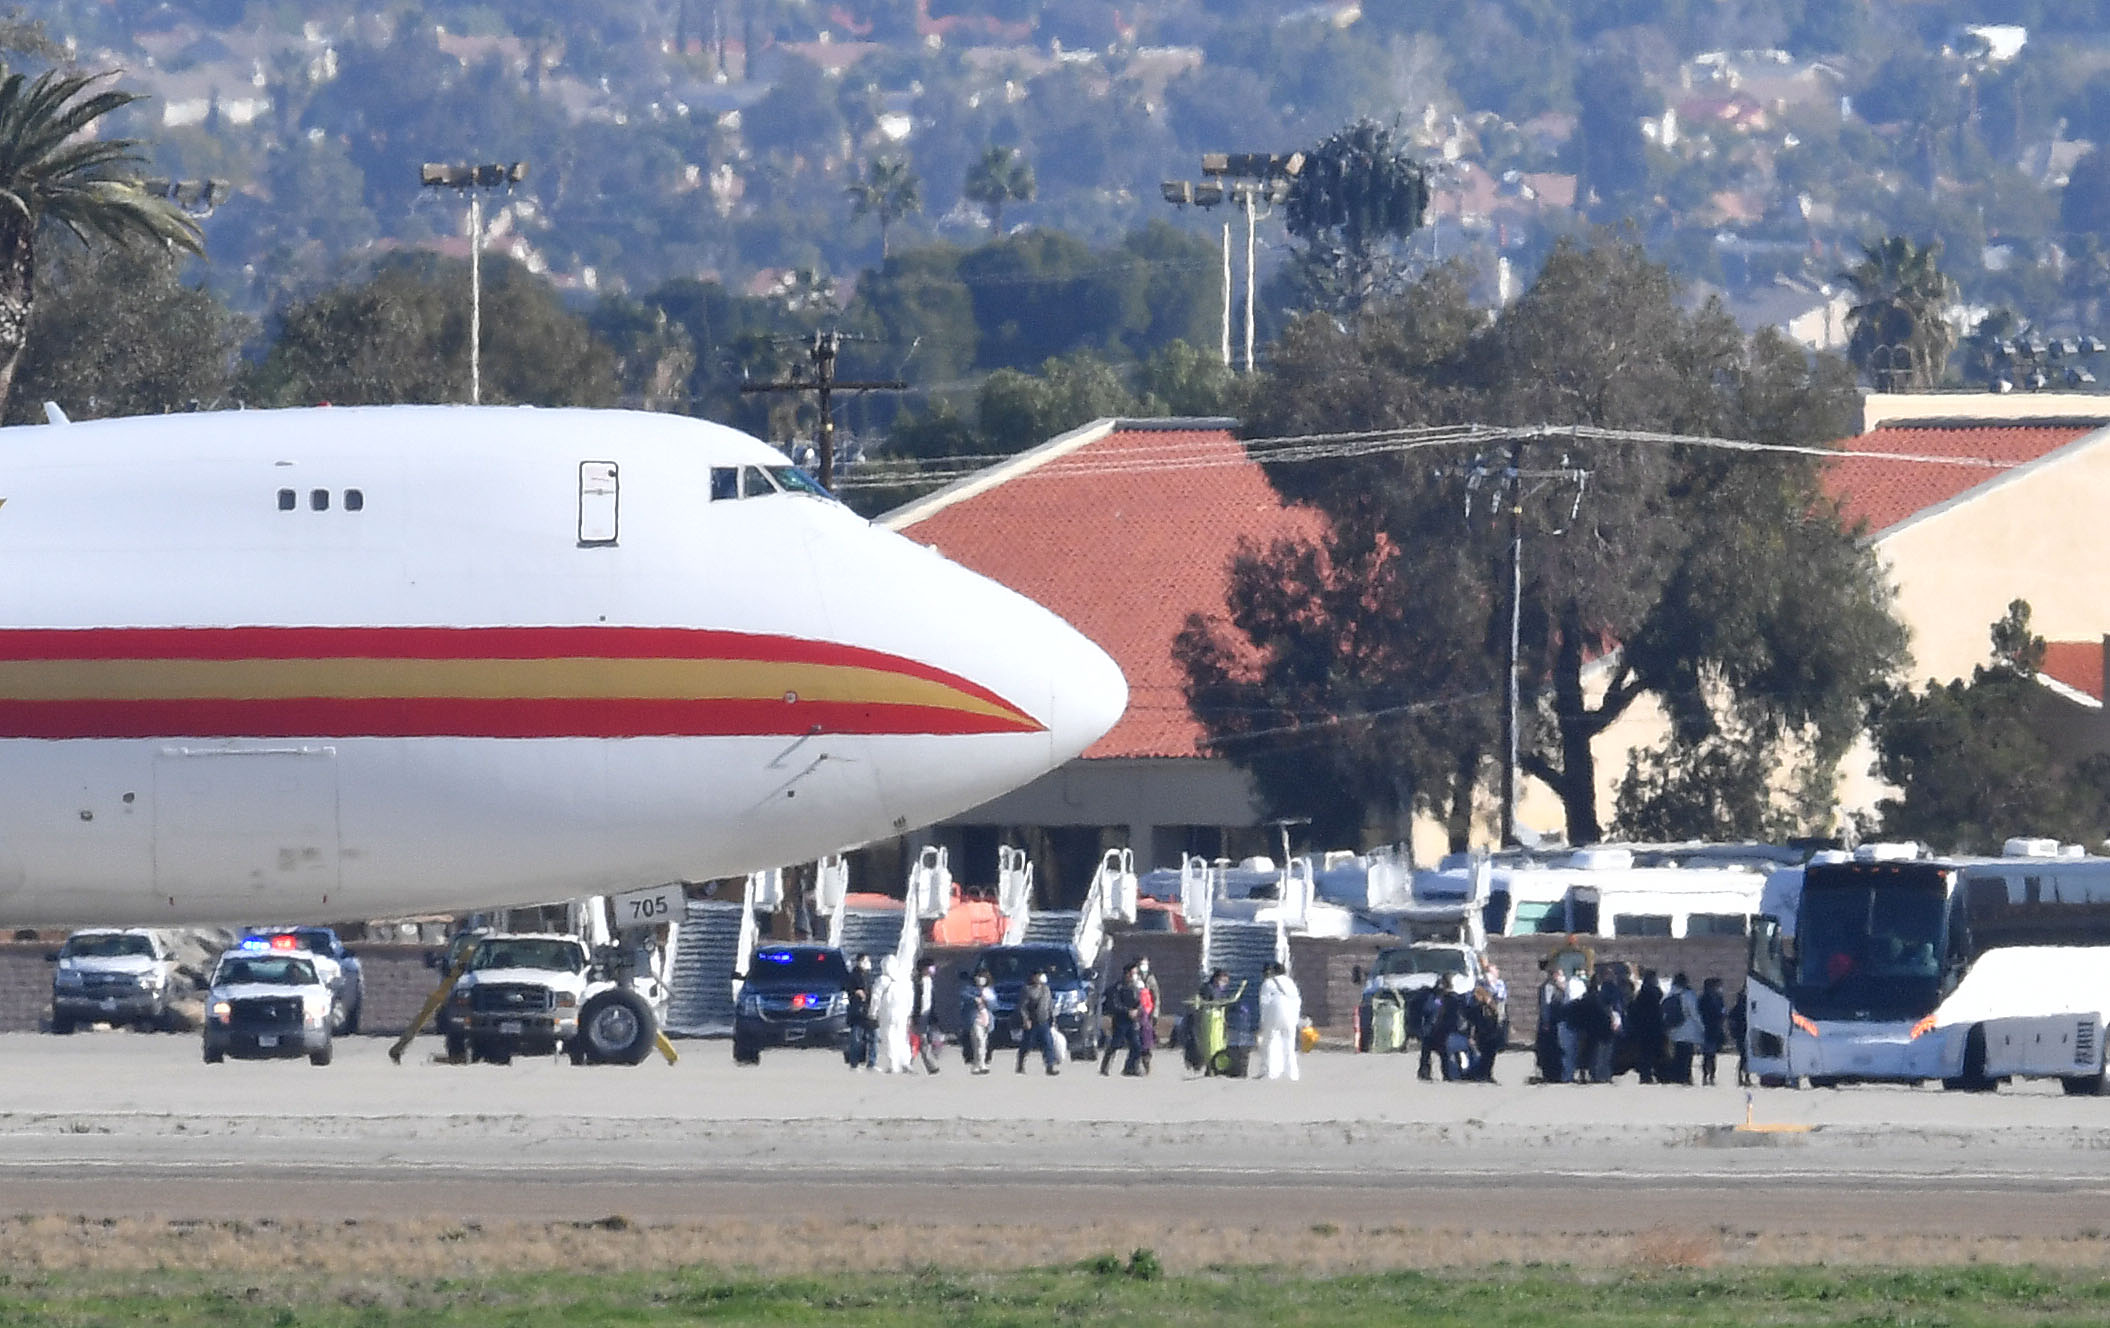 A team in white biohazard suits watch as some of the approximately 200 passengers walk to waiting buses upon arriving on a charter flight from Wuhan, China, after landing at March Air Reserve Base in Riverside, California, on Wednesday, January 29.